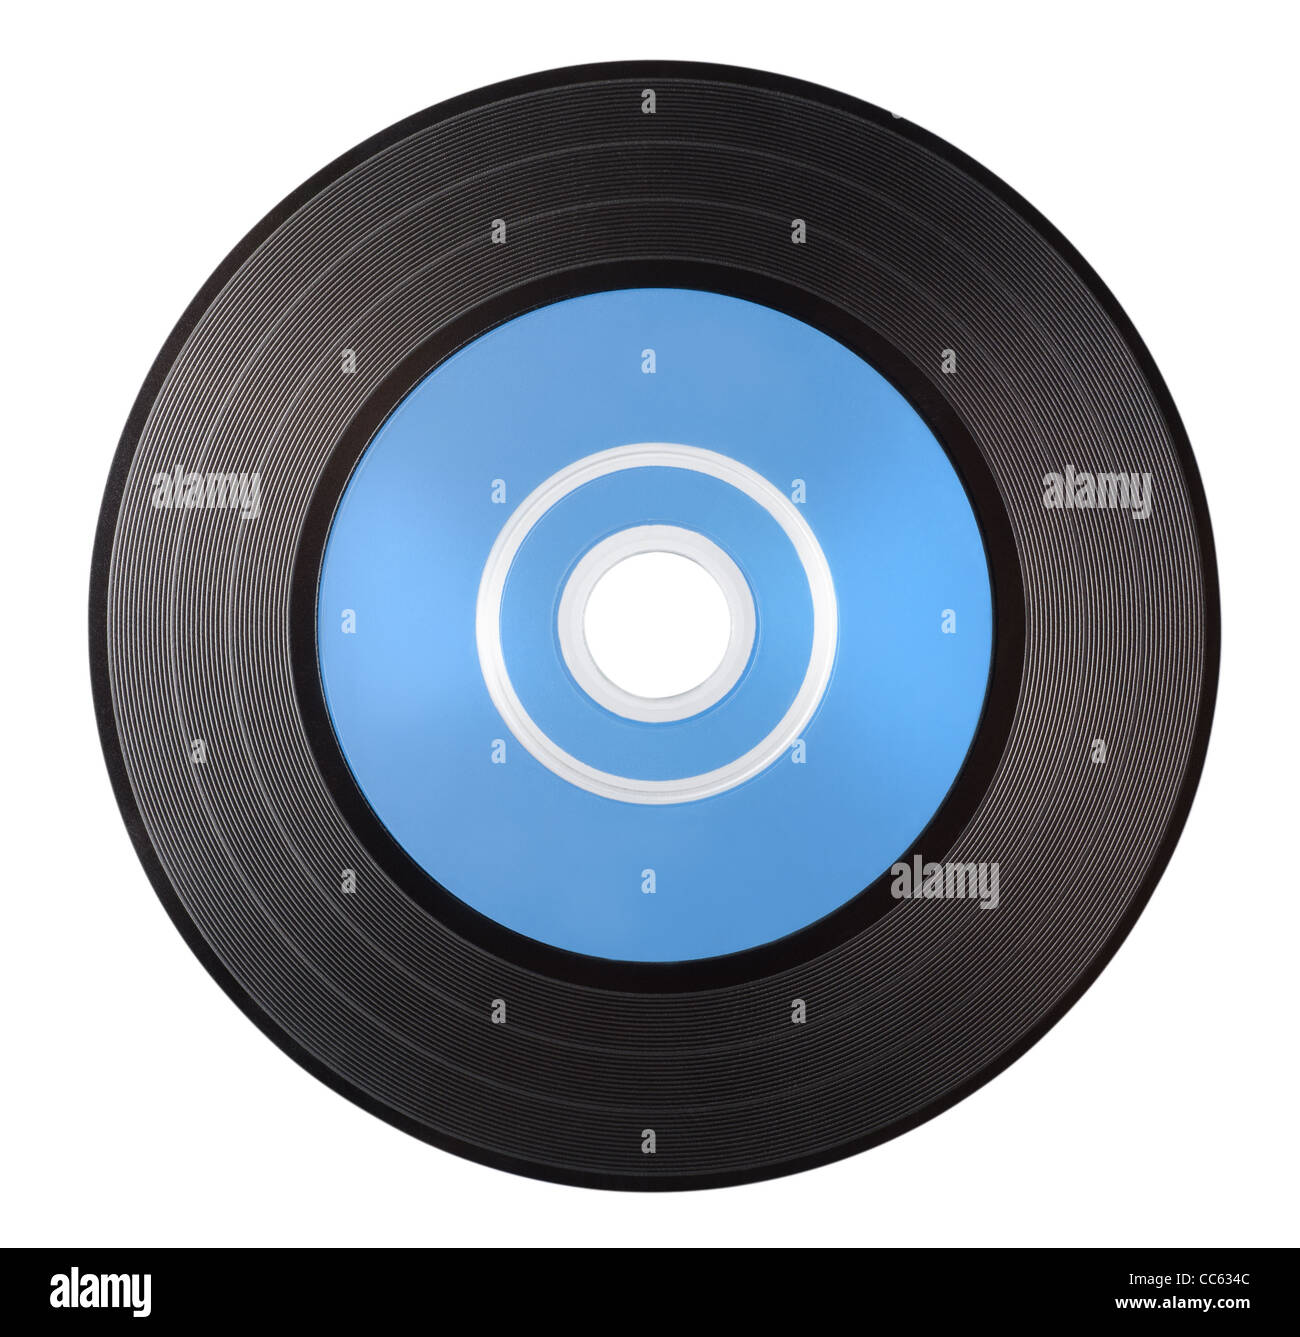 Old vinyl record with blue blank label isolated on white background - Stock Image